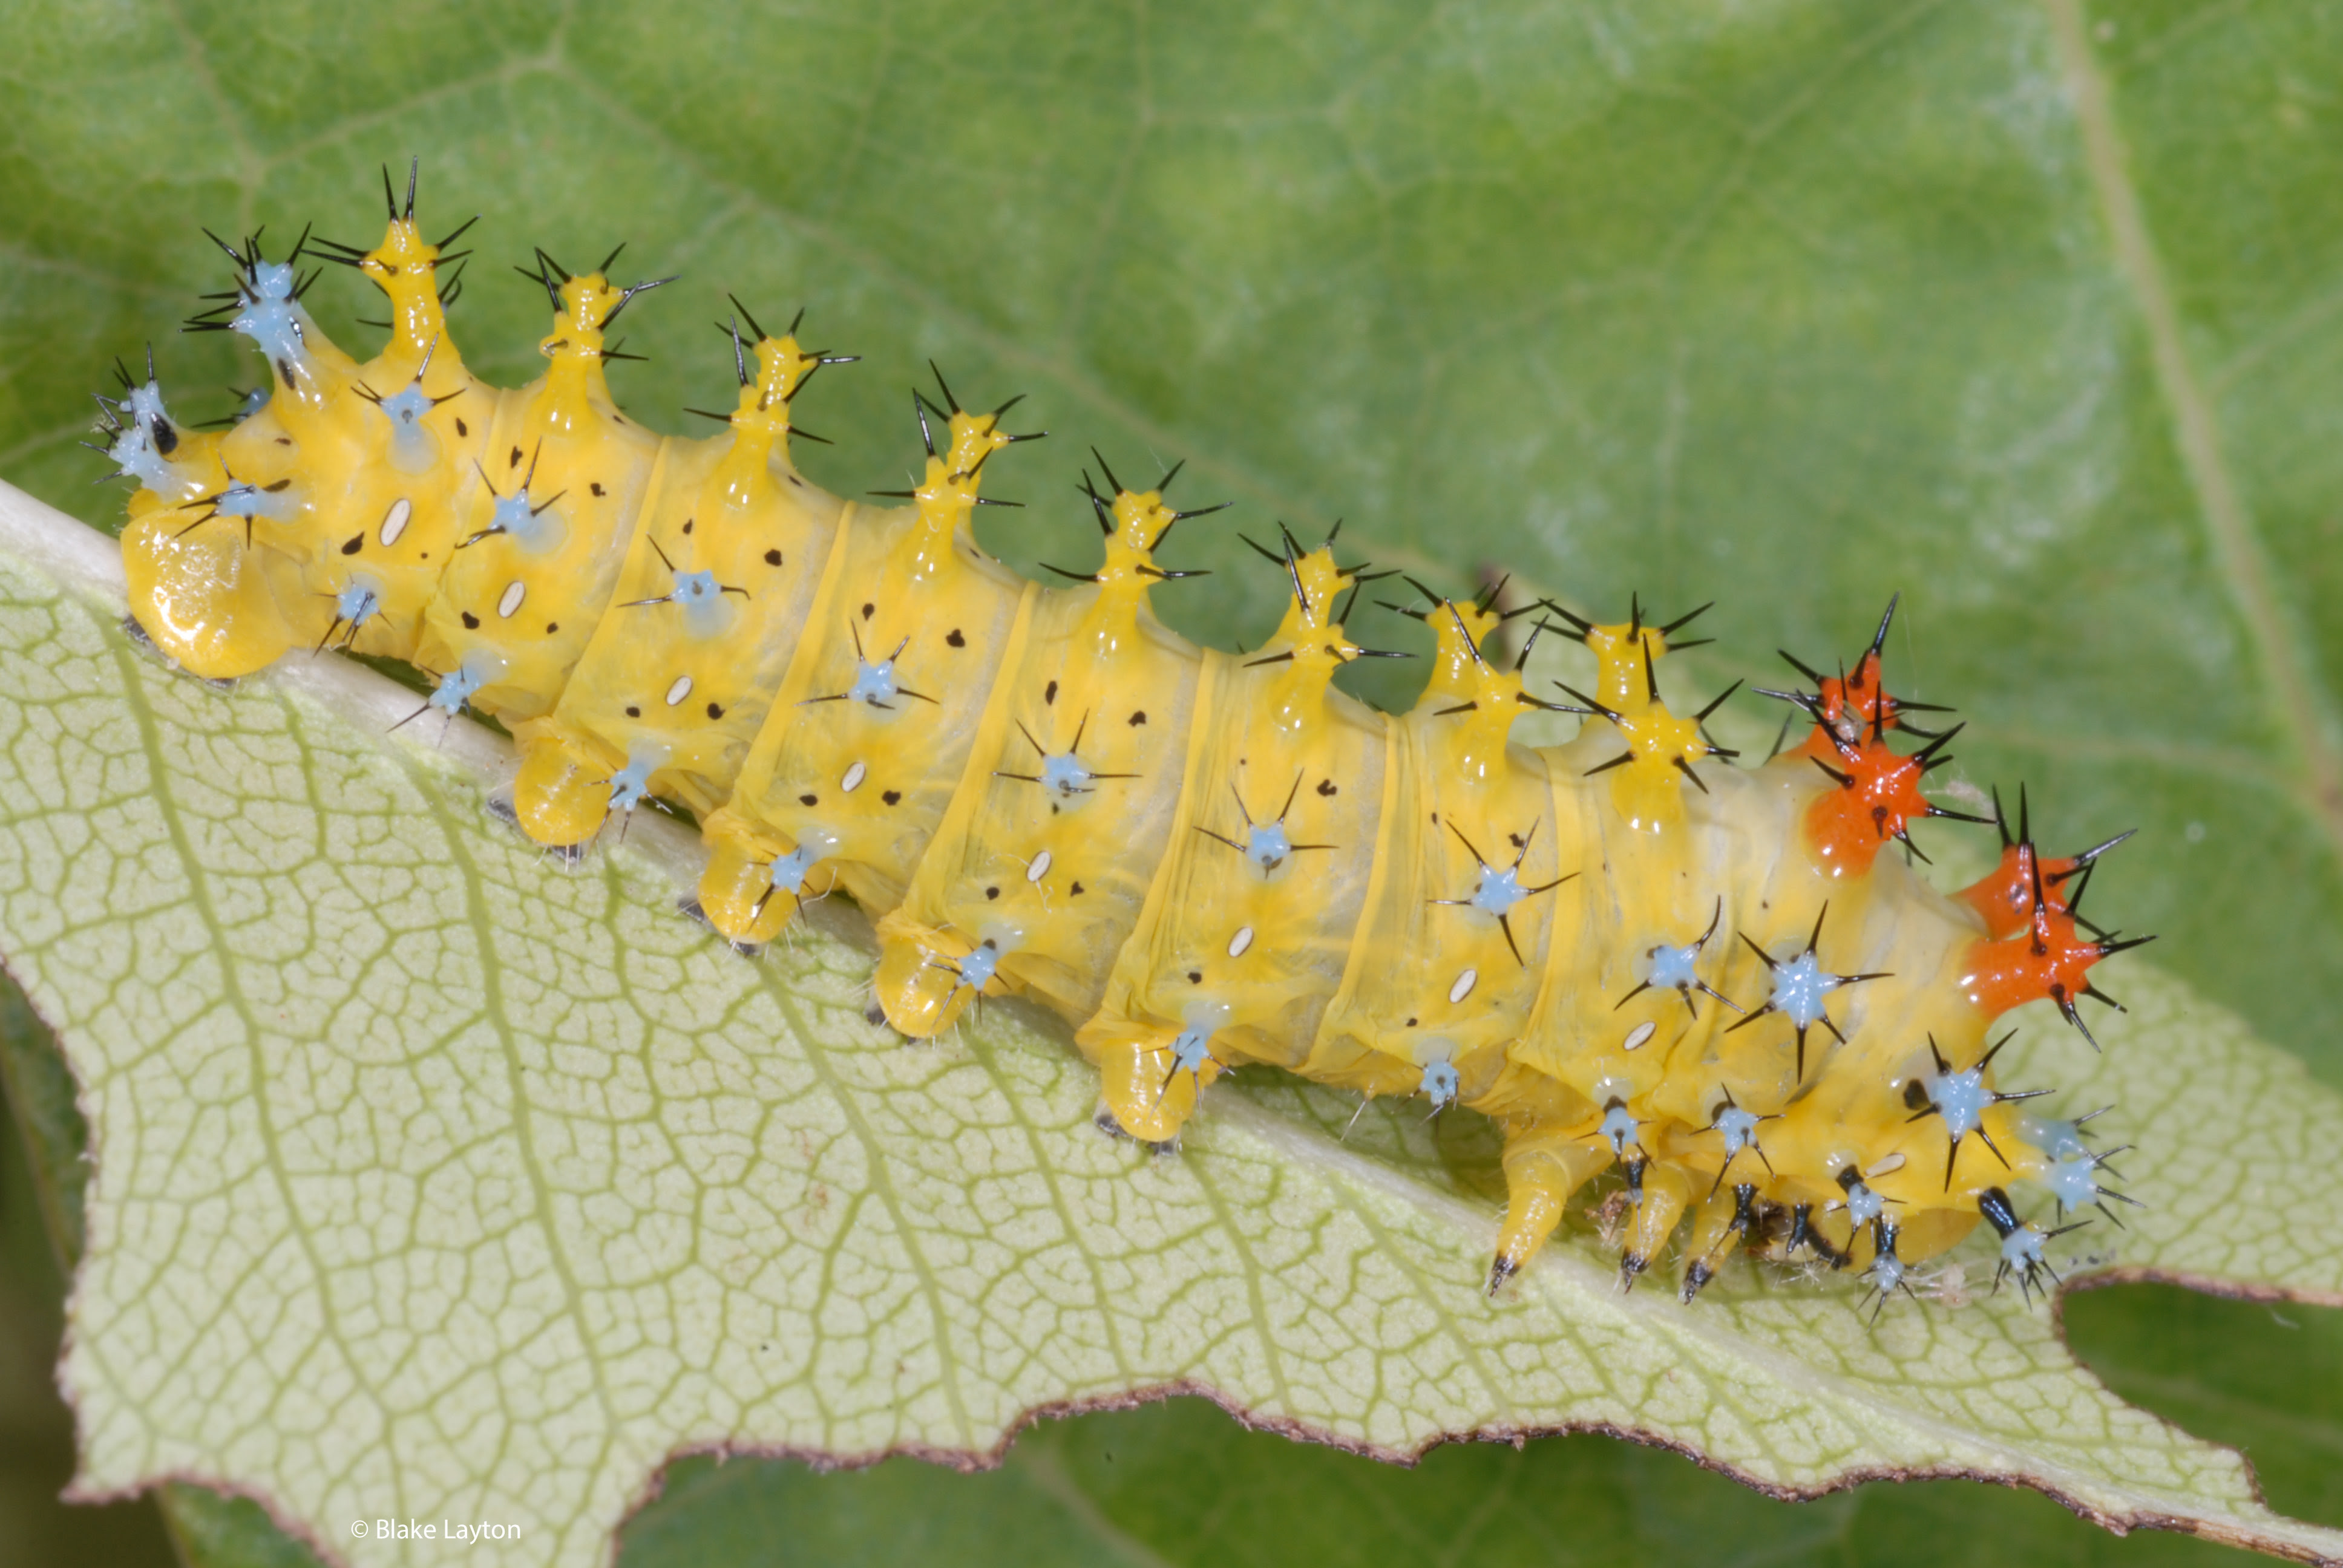 Light yellow caterpillar with light blue and orange areas covered in black spikes.